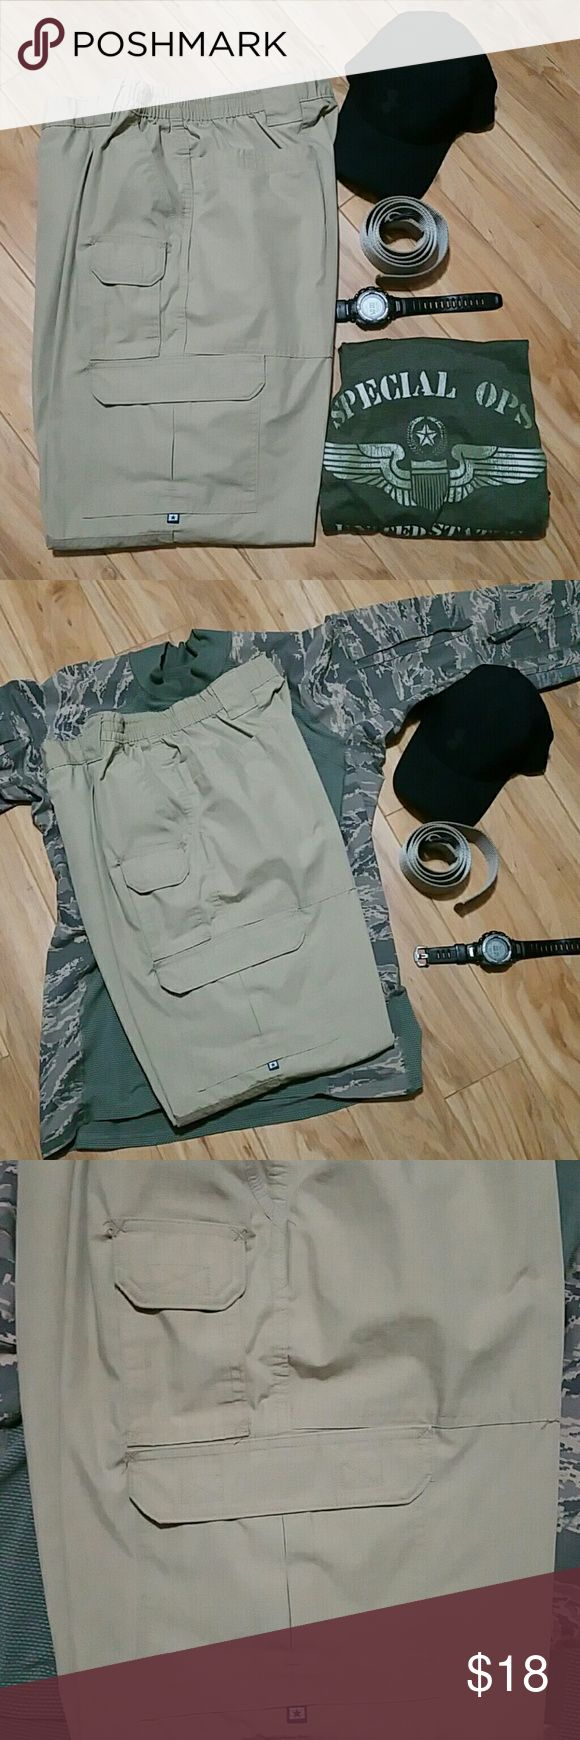 Propper 38 X 30 Propper Tactical pants size 38 X 30. Small stain on front and lower leg..great for the range. Propper Pants Cargo